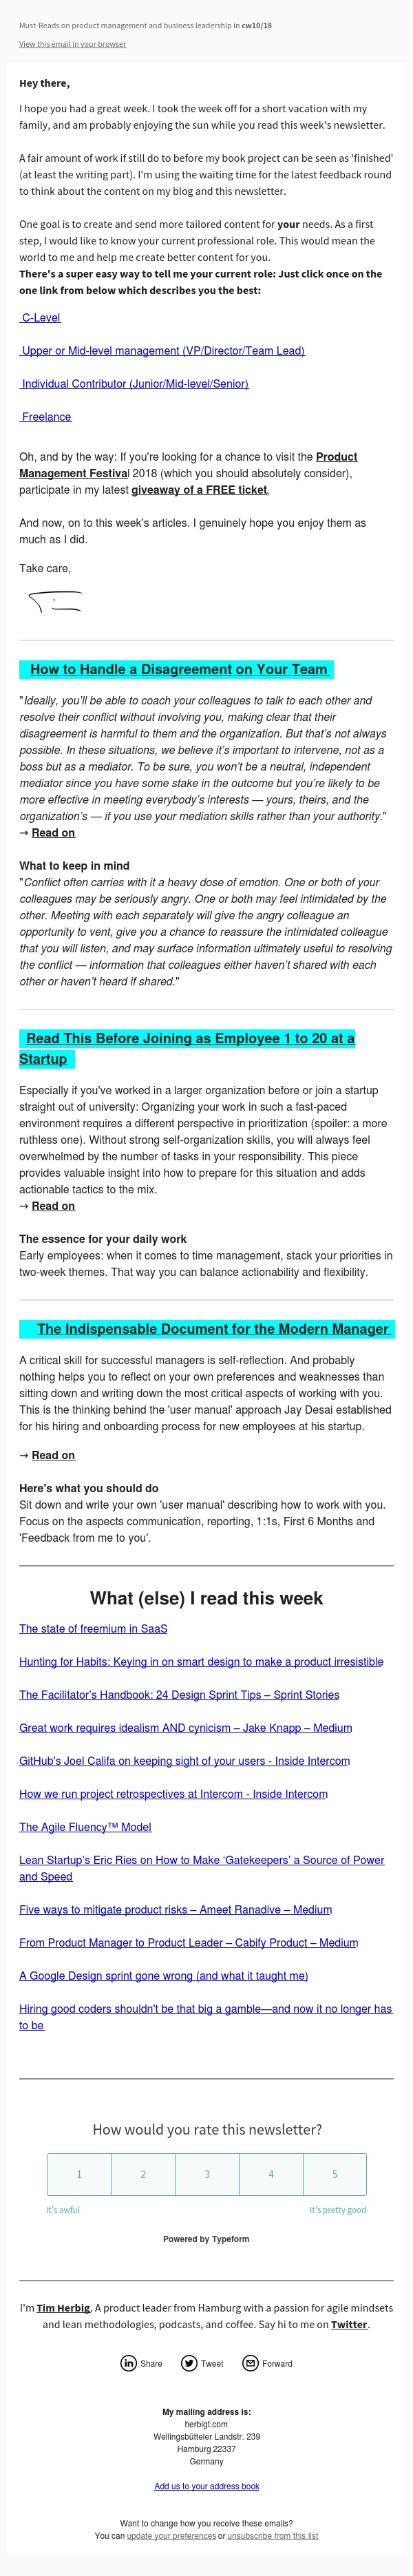 How to Handle a Disagreement on Your Team &The Indispensable Document for the ModernManager